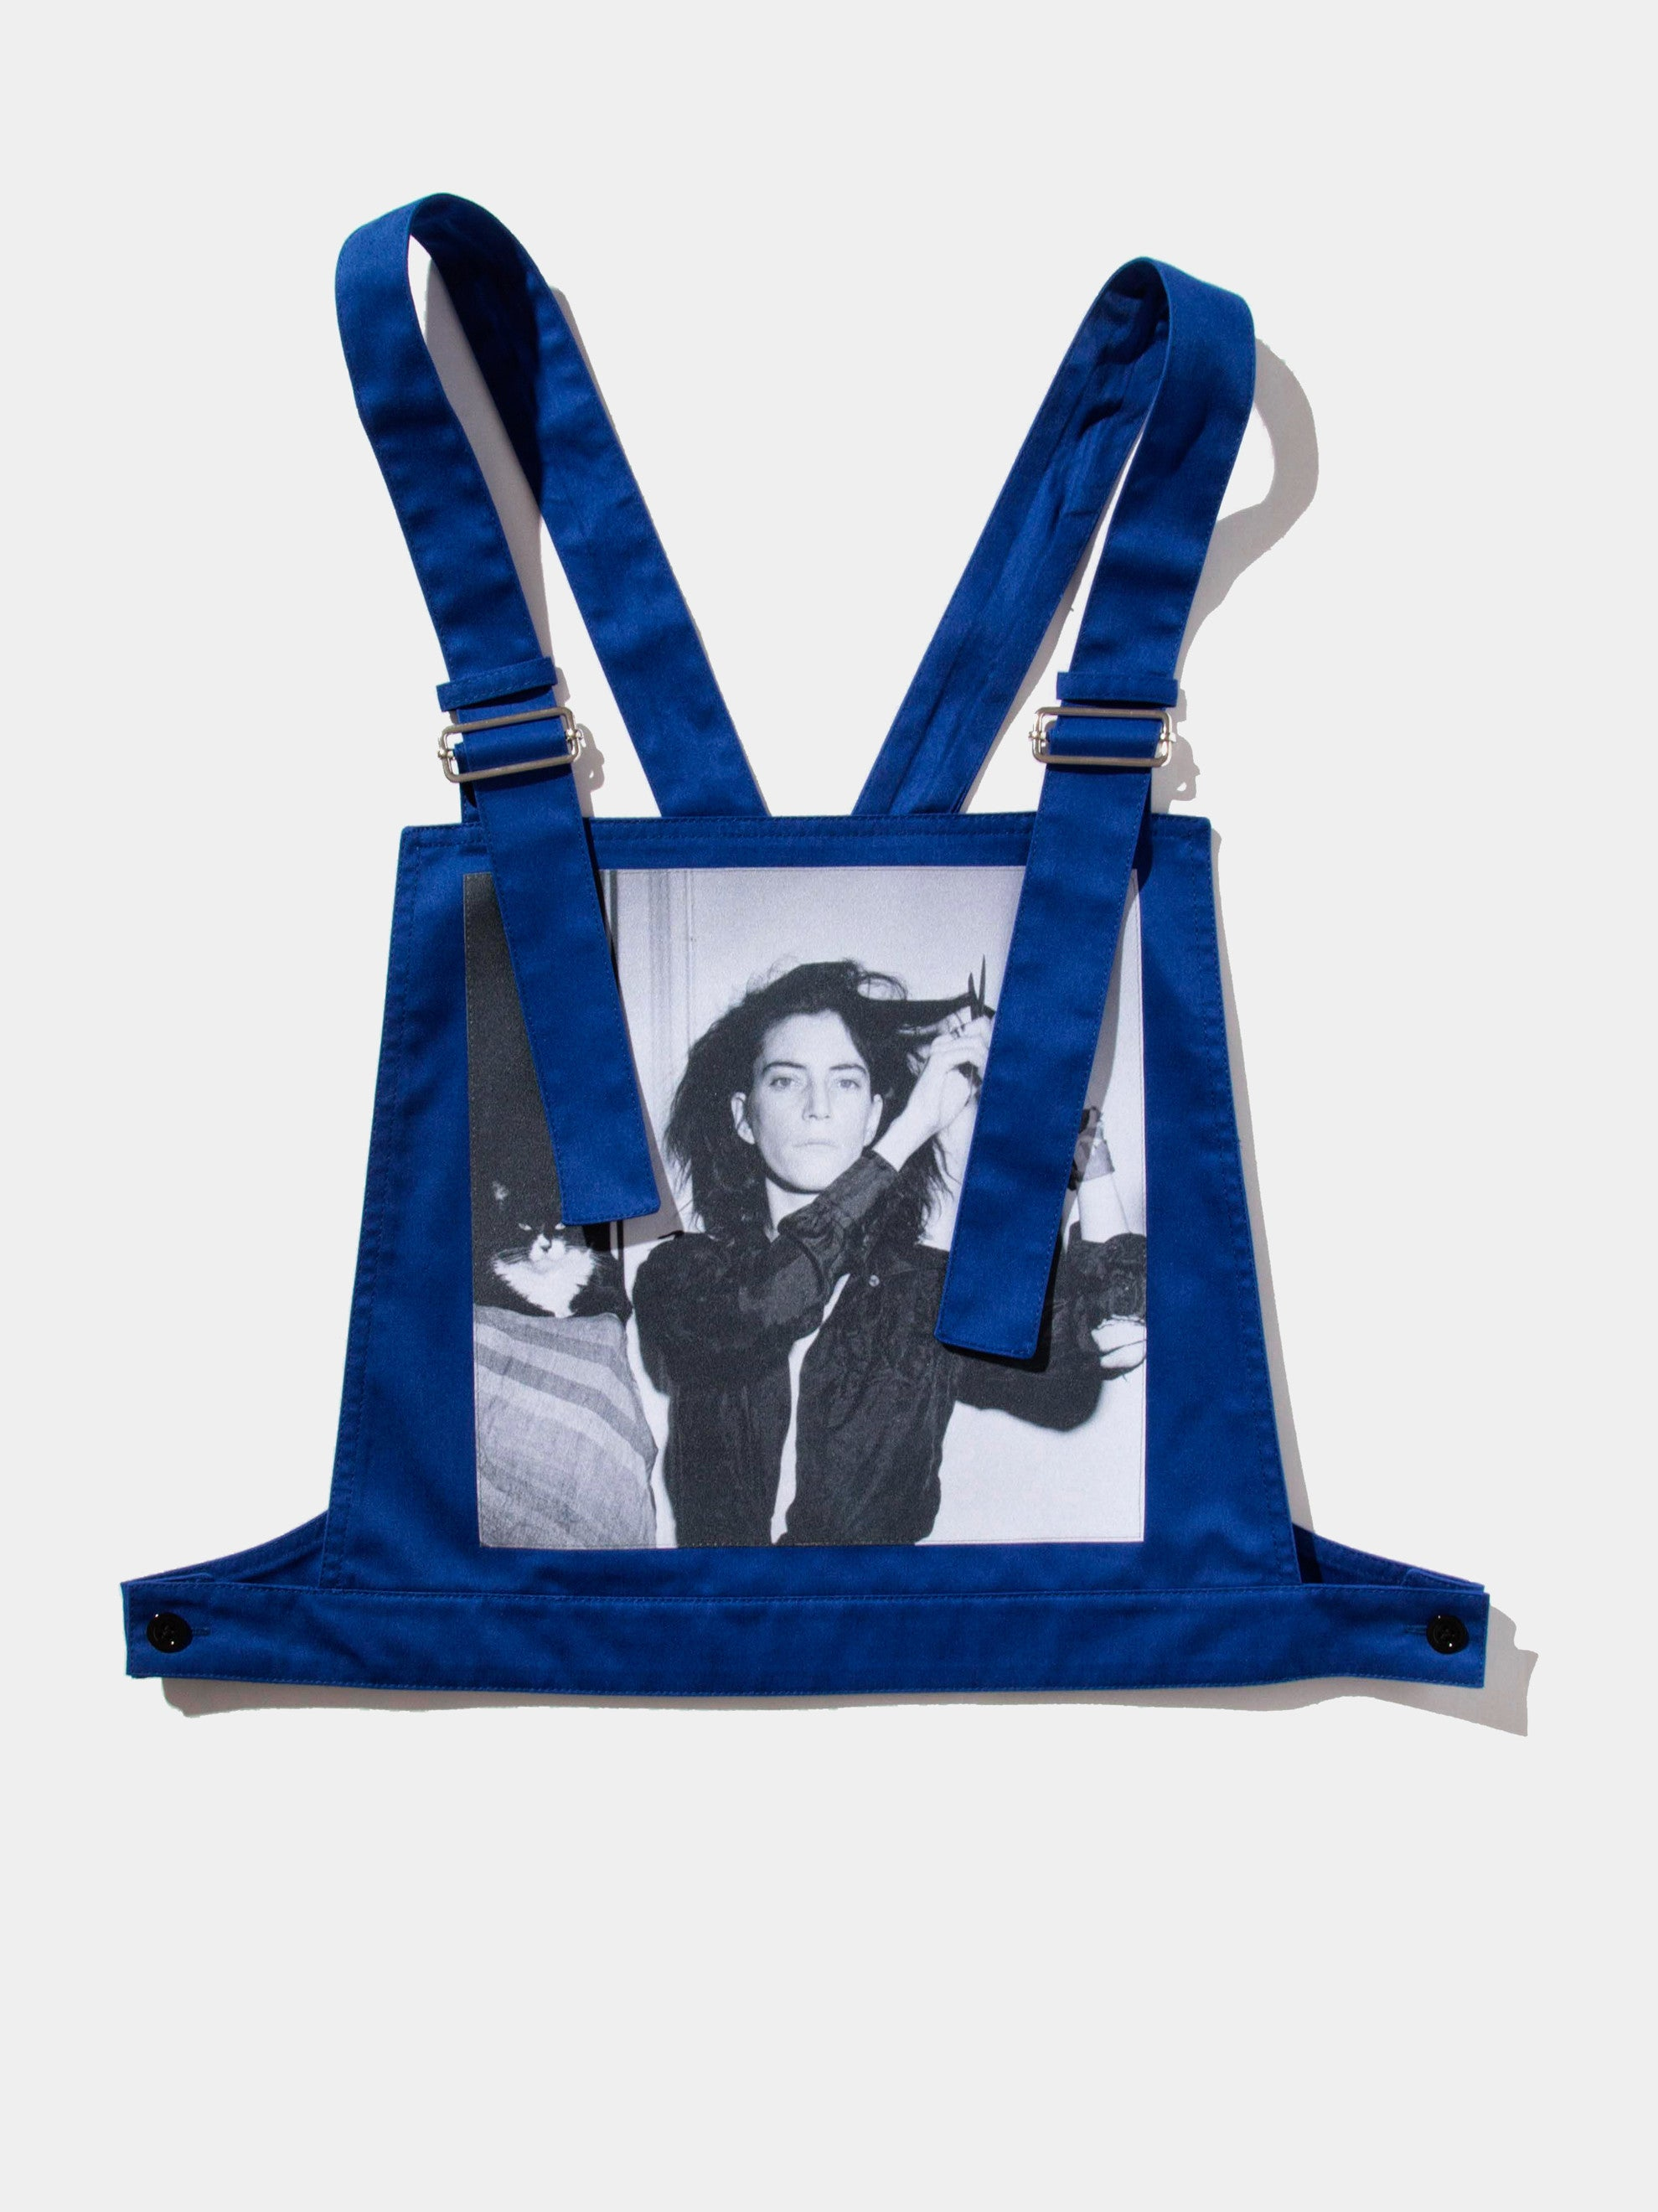 Cut-Off Dungarees (Patti Smith)